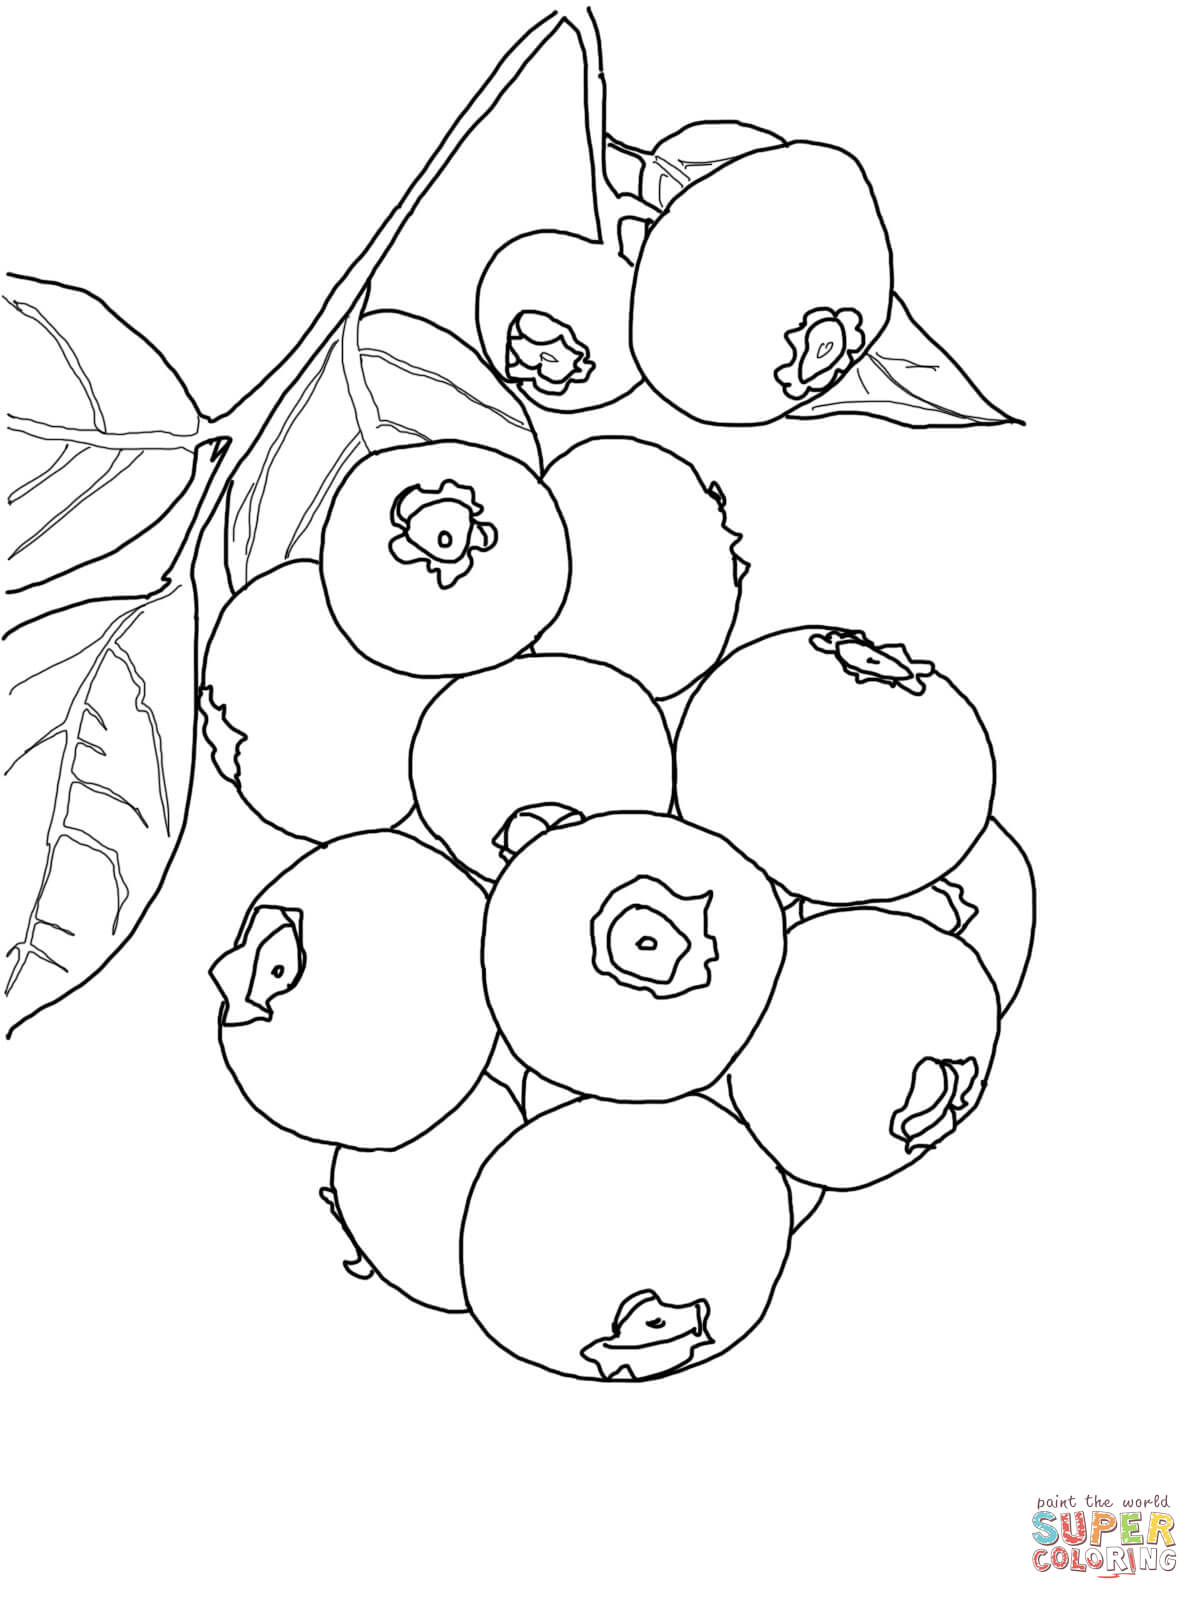 Blueberries clipart black and white. Blueberry coloring pages free